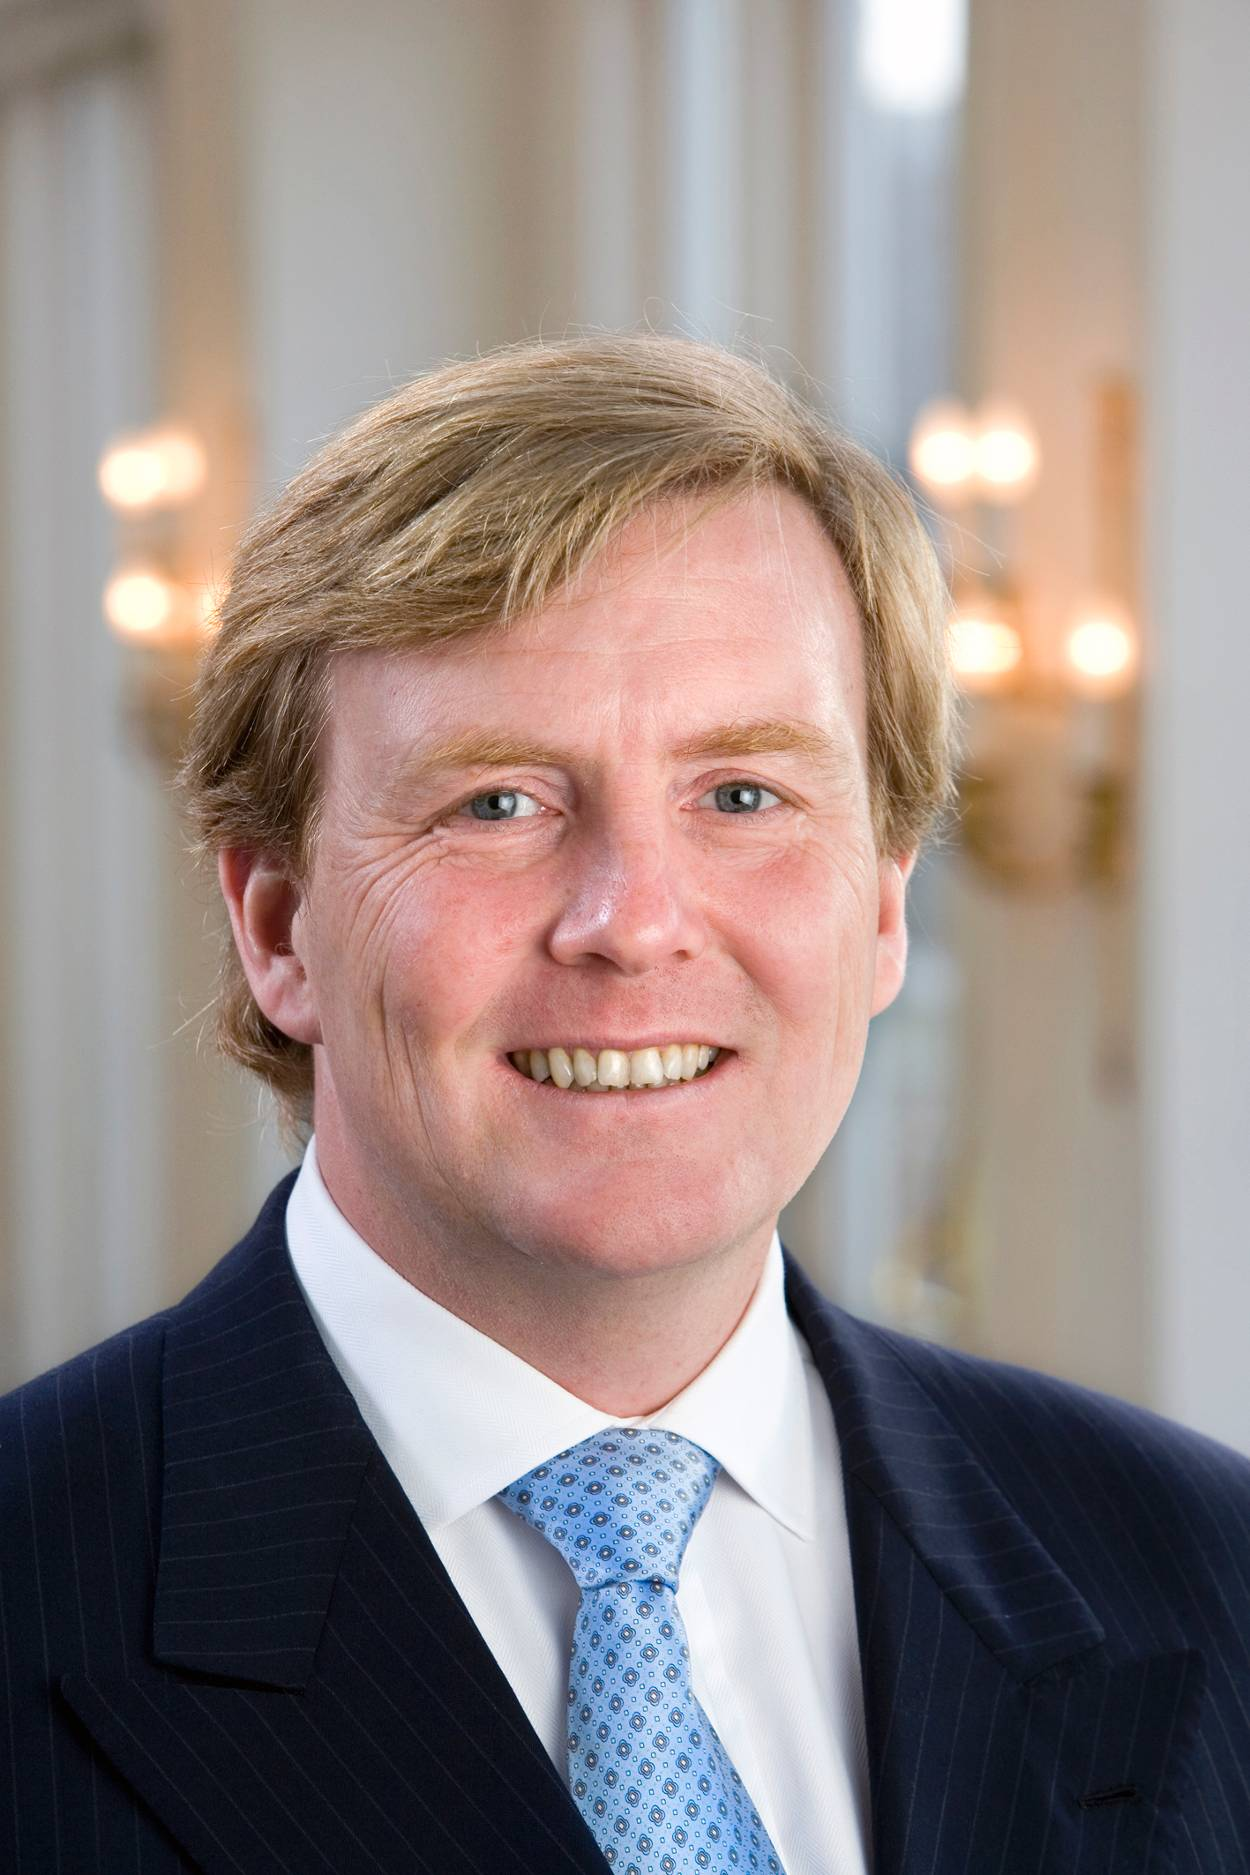 Whos Who His Majesty King Willem Alexander